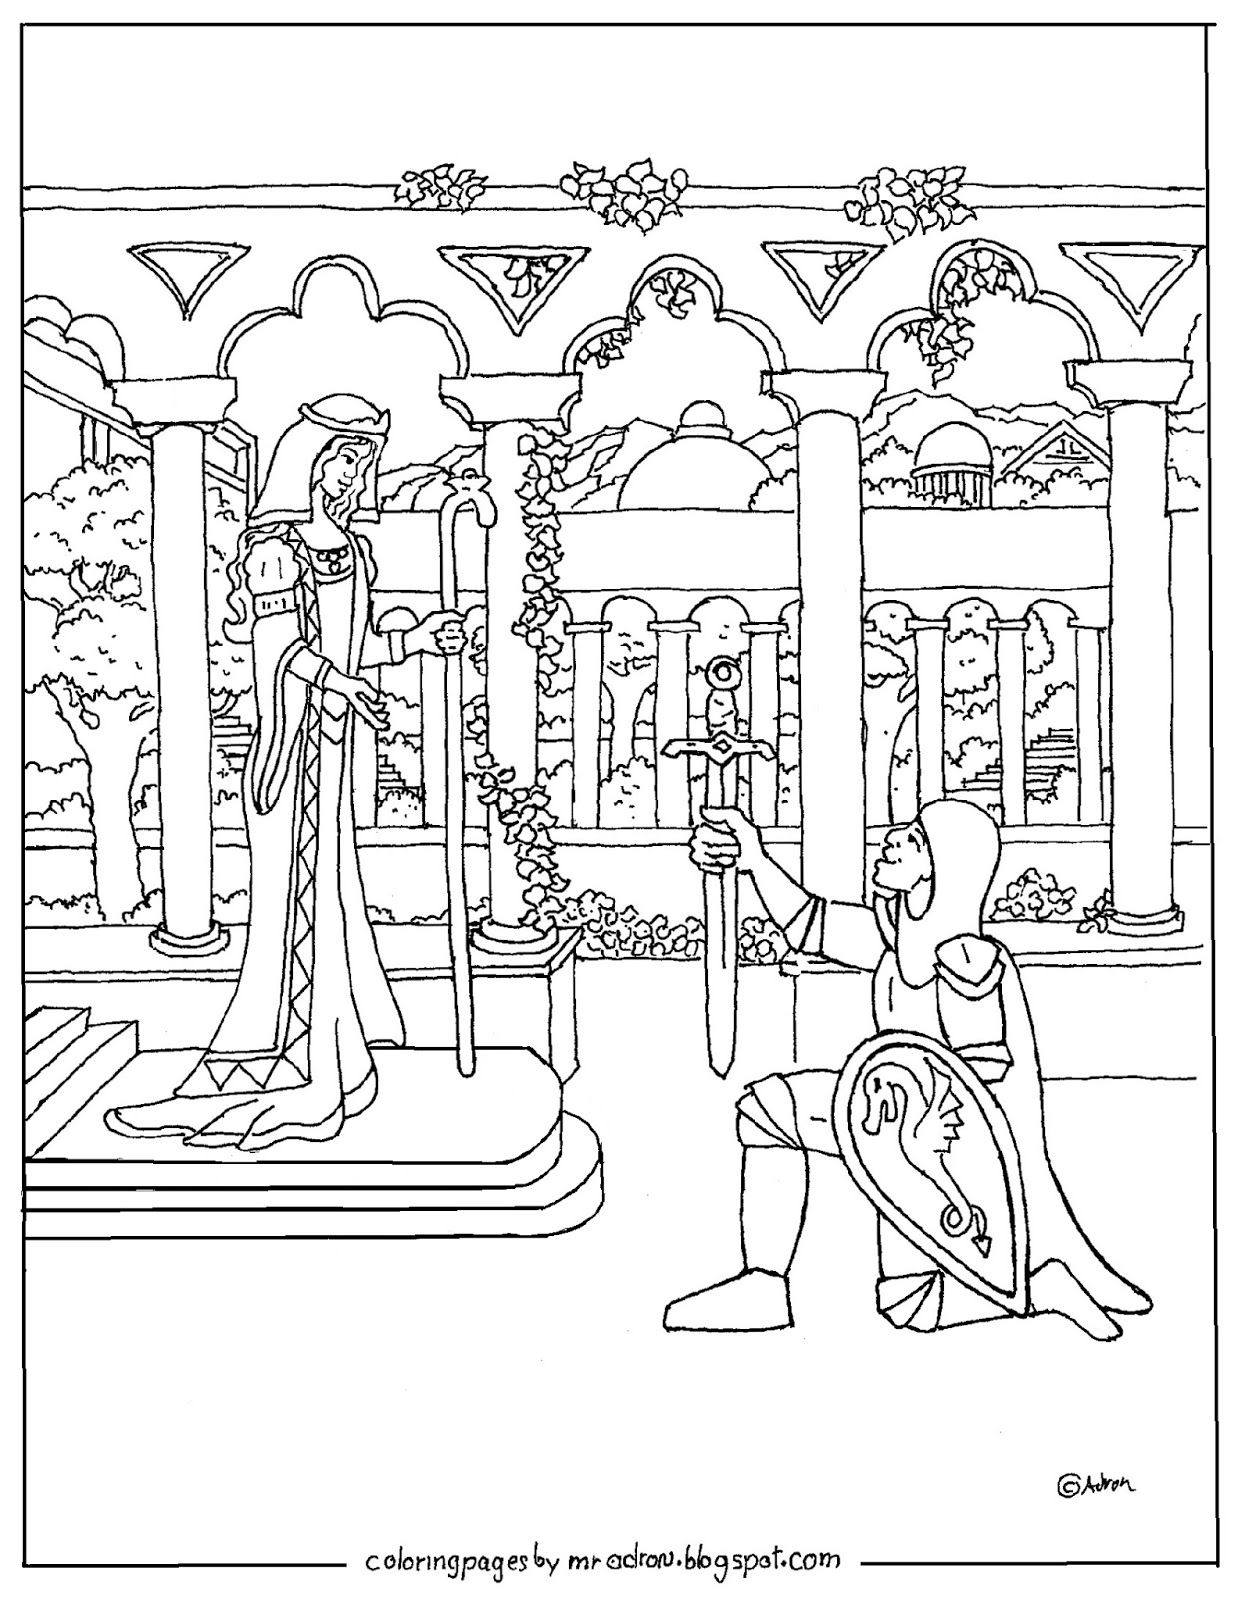 Coloring Pages For Kids By Mr Adron Printable Knight And